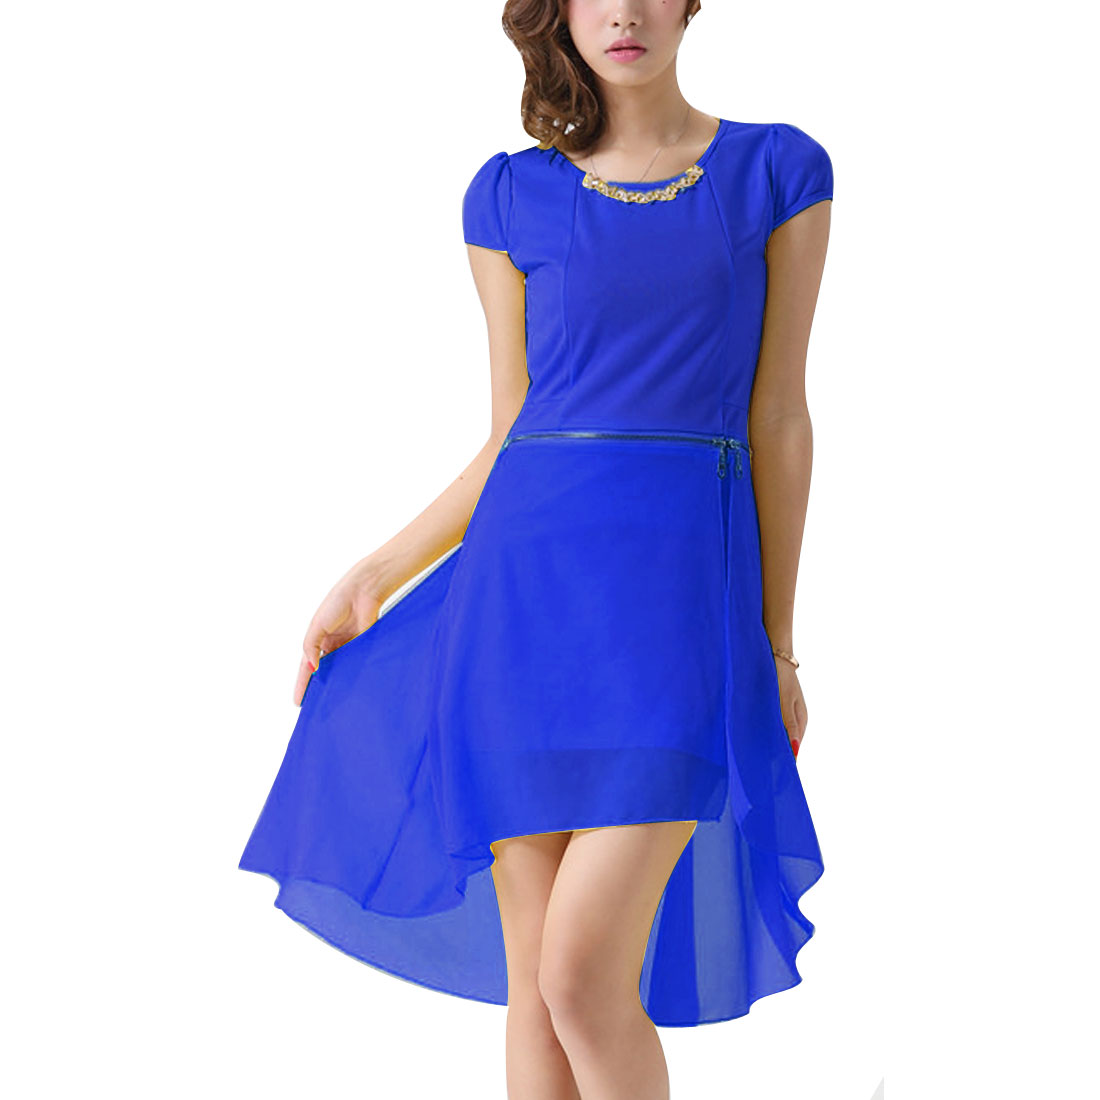 Lady Chic Conceal Zipper Side Chiffon Splice Royalblue Convertible Dress S